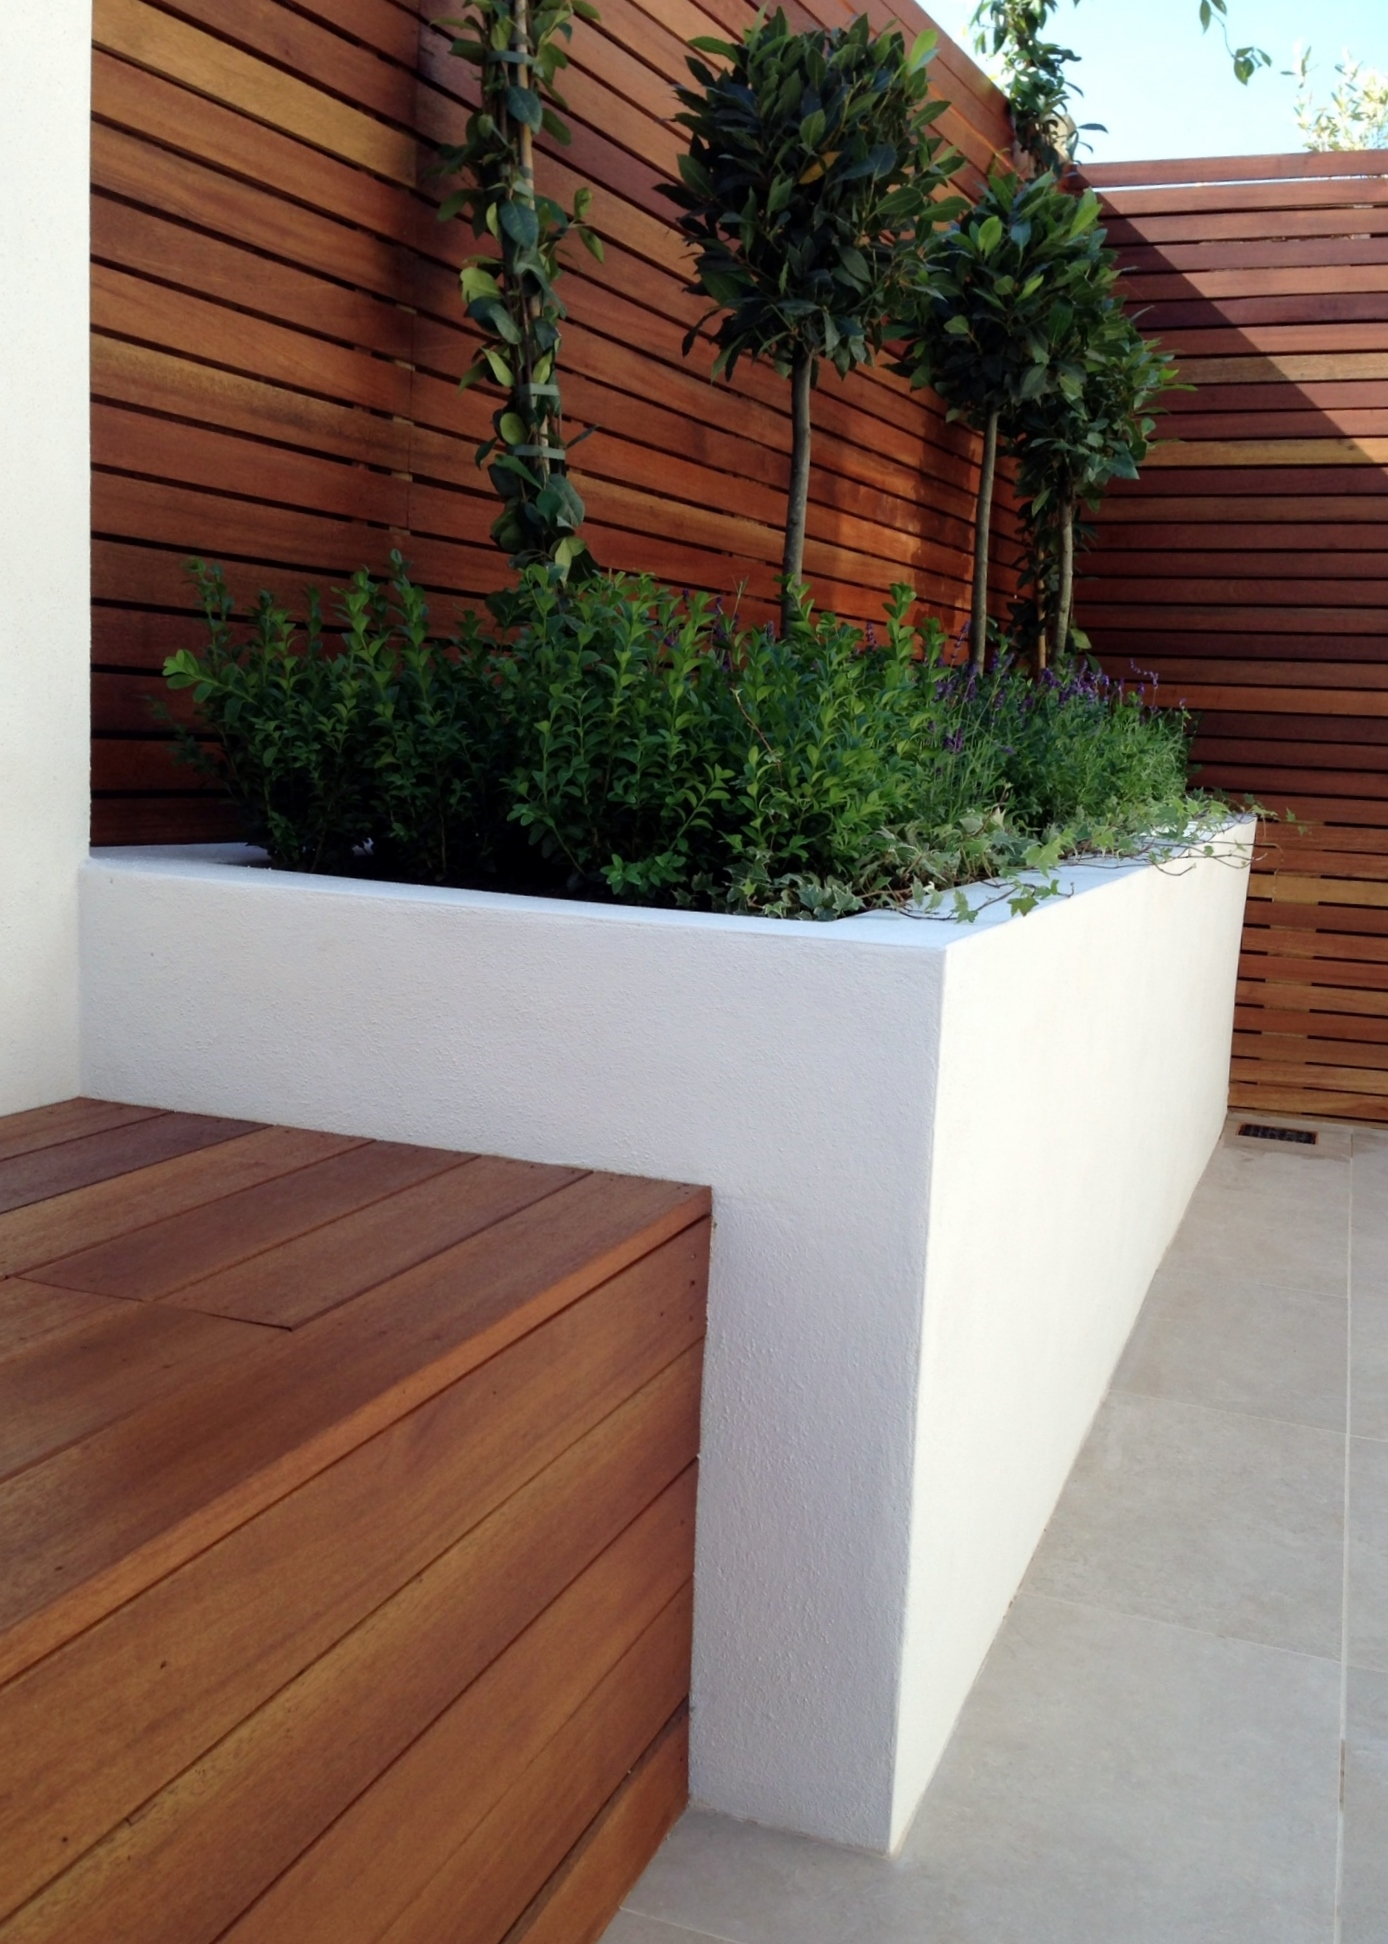 Small modern garden design london garden blog for Tiny garden design ideas